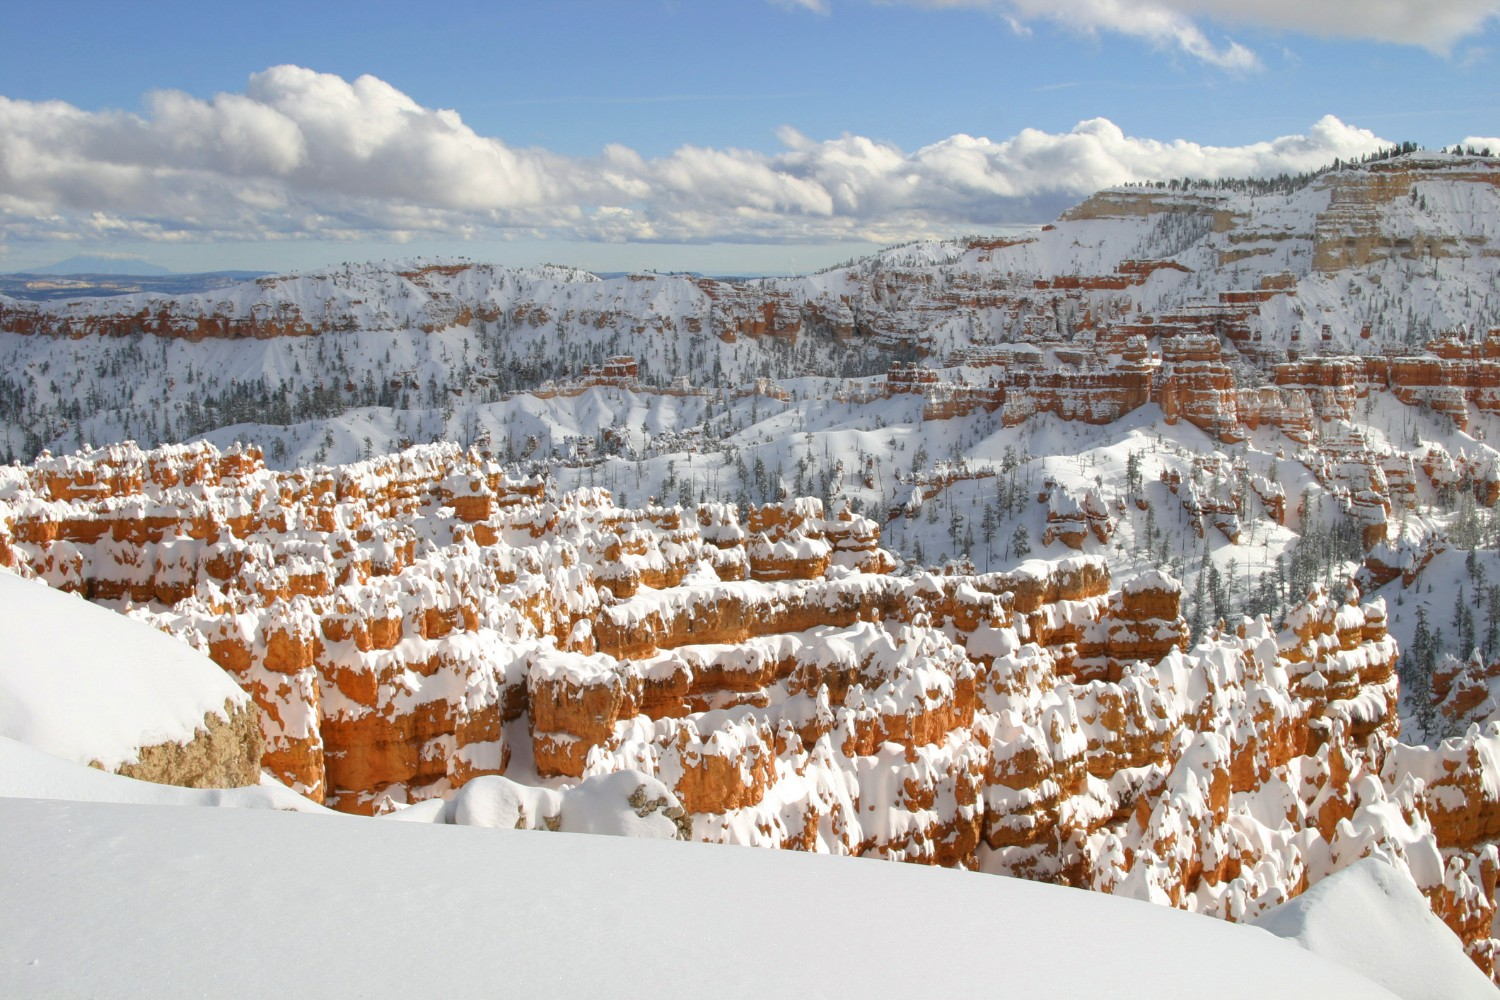 Snow covering the spires of Bryce Canyon National Park